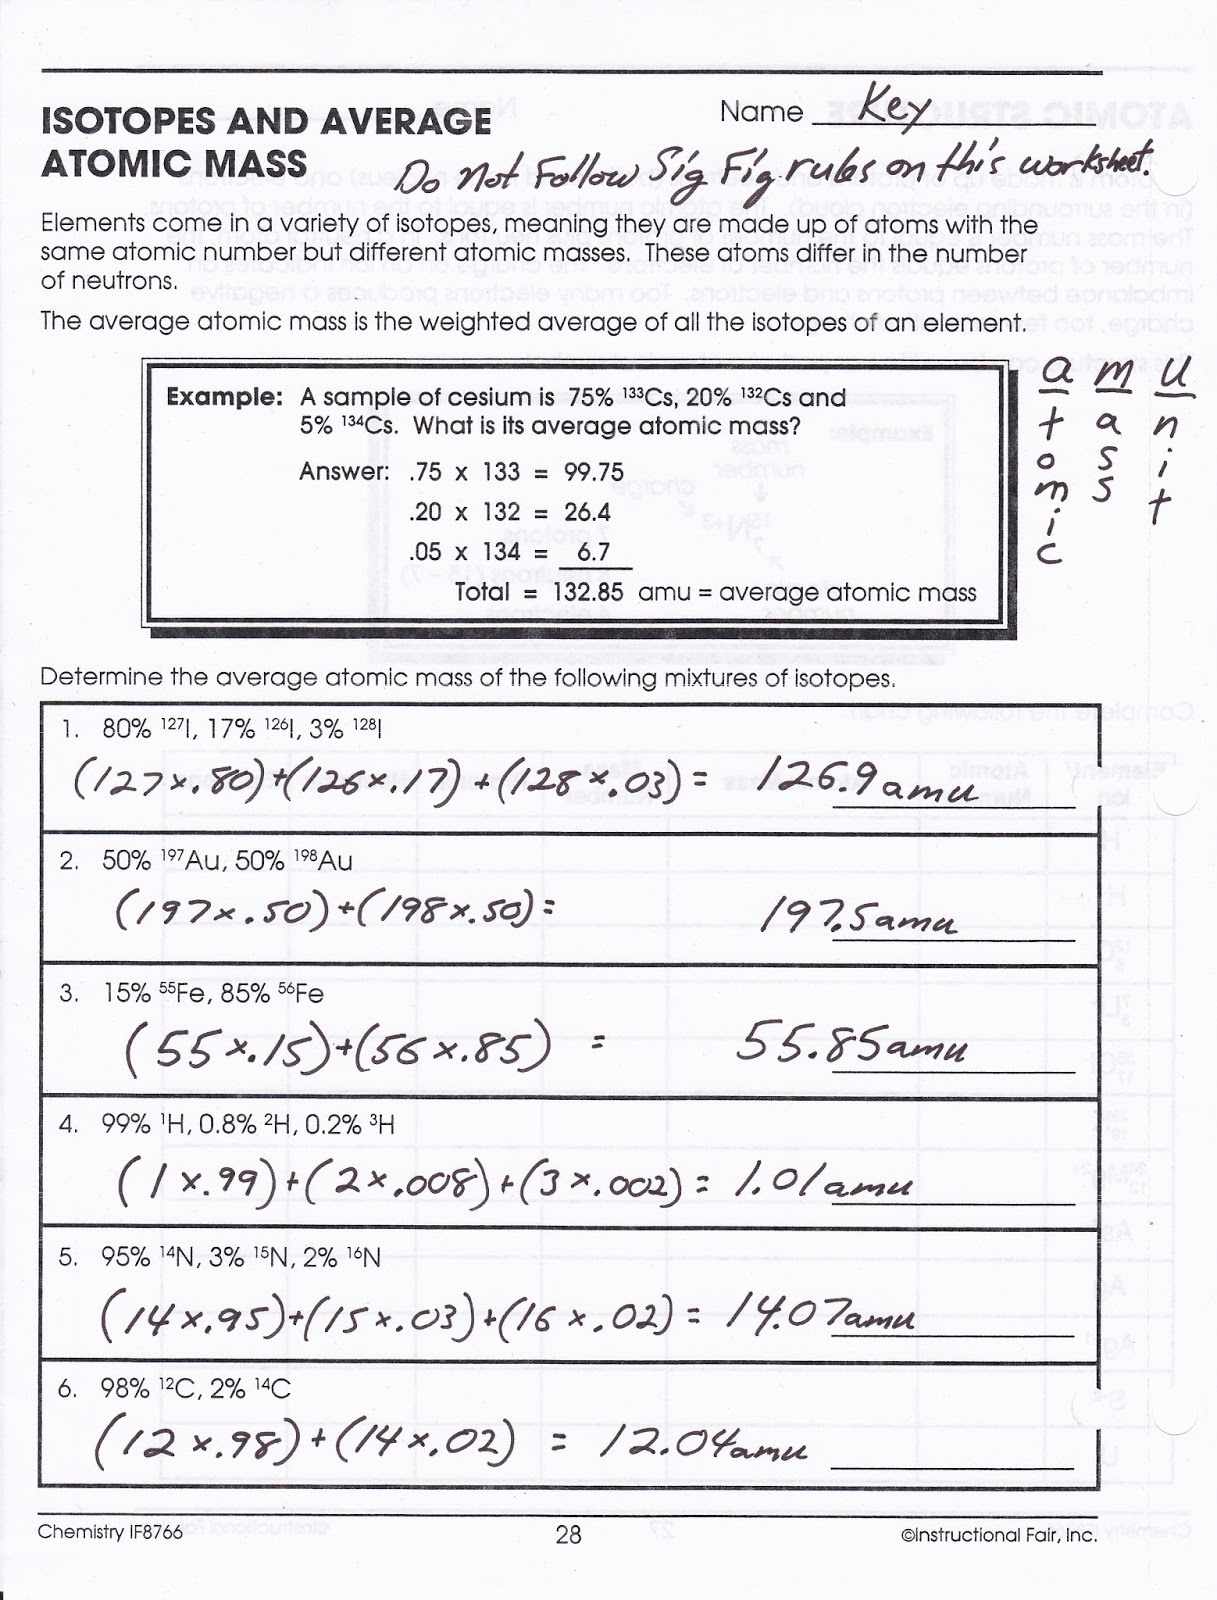 Determination Of Average Atomic Mass Worksheet For 10th